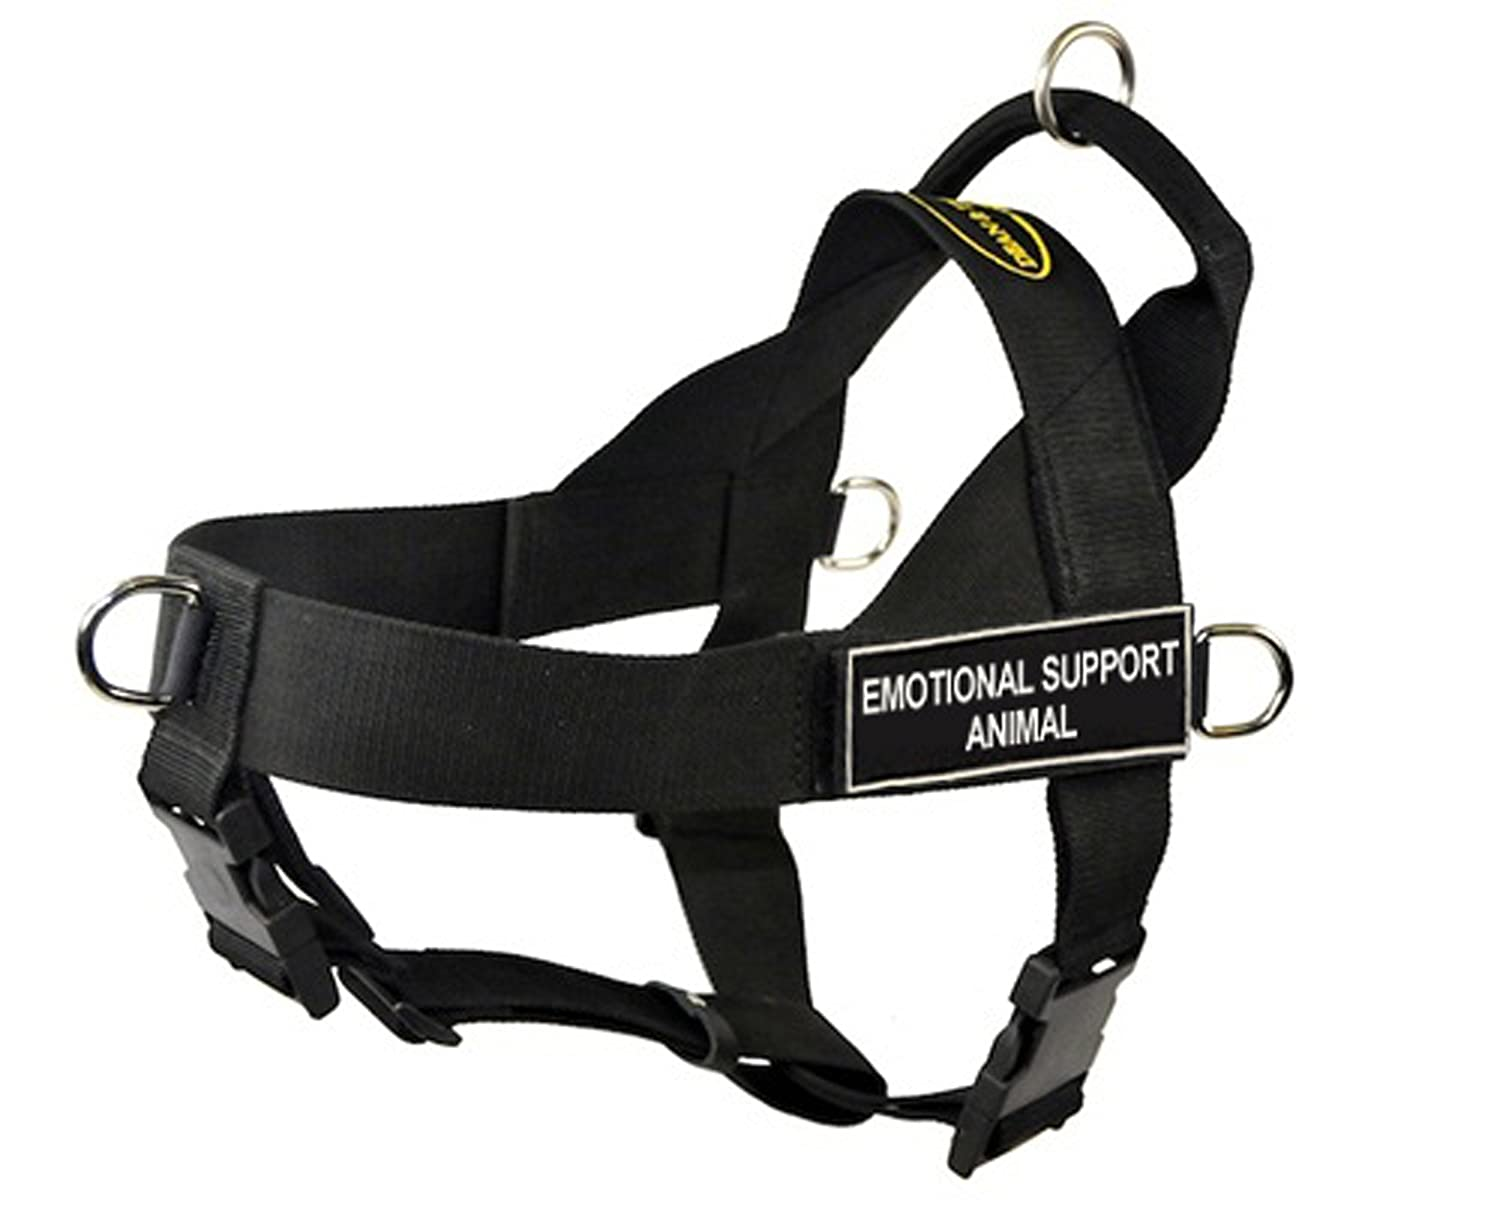 Dean & Tyler Universal No Pull Dog Harness, Emotional Support Animal, Small, Fits Girth Size  24-Inch to 27-Inch, Black